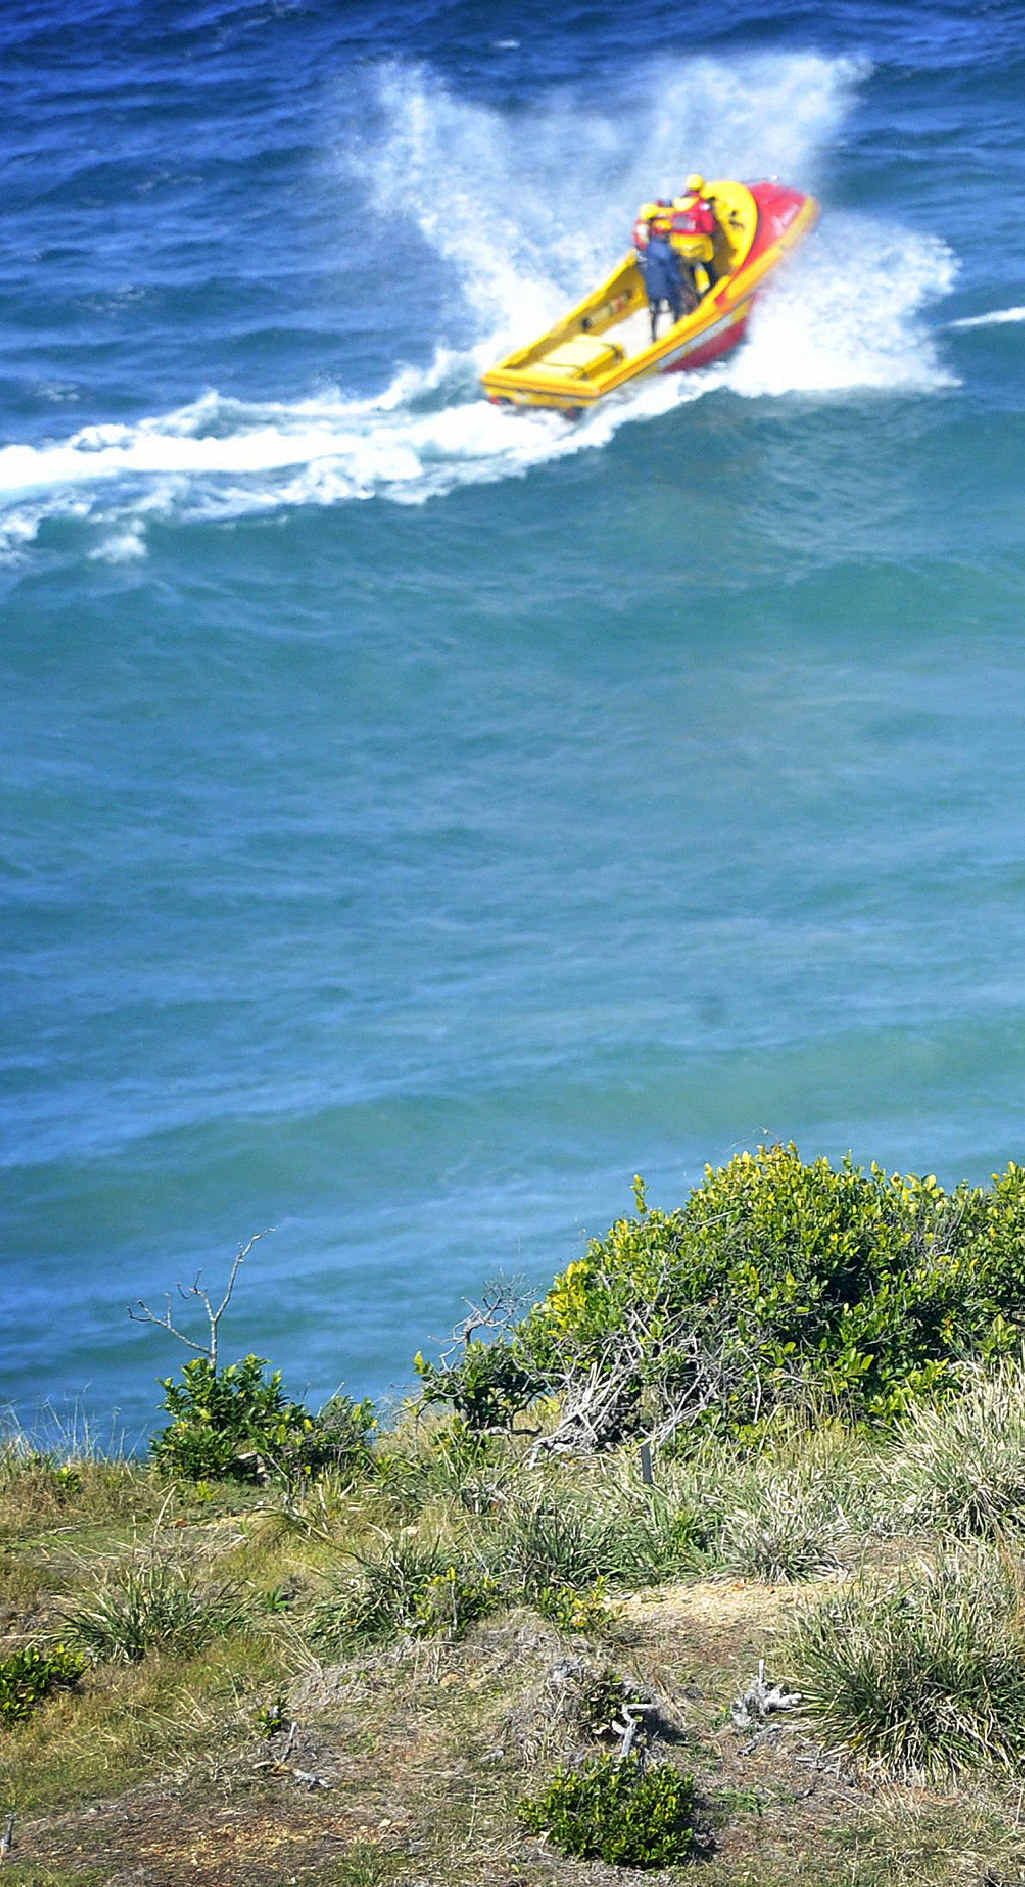 Police and other associated rescue services scour Cape Byron for any sign of the missing 19-year-old Irish surfer who went missing in rough seas last weekend.